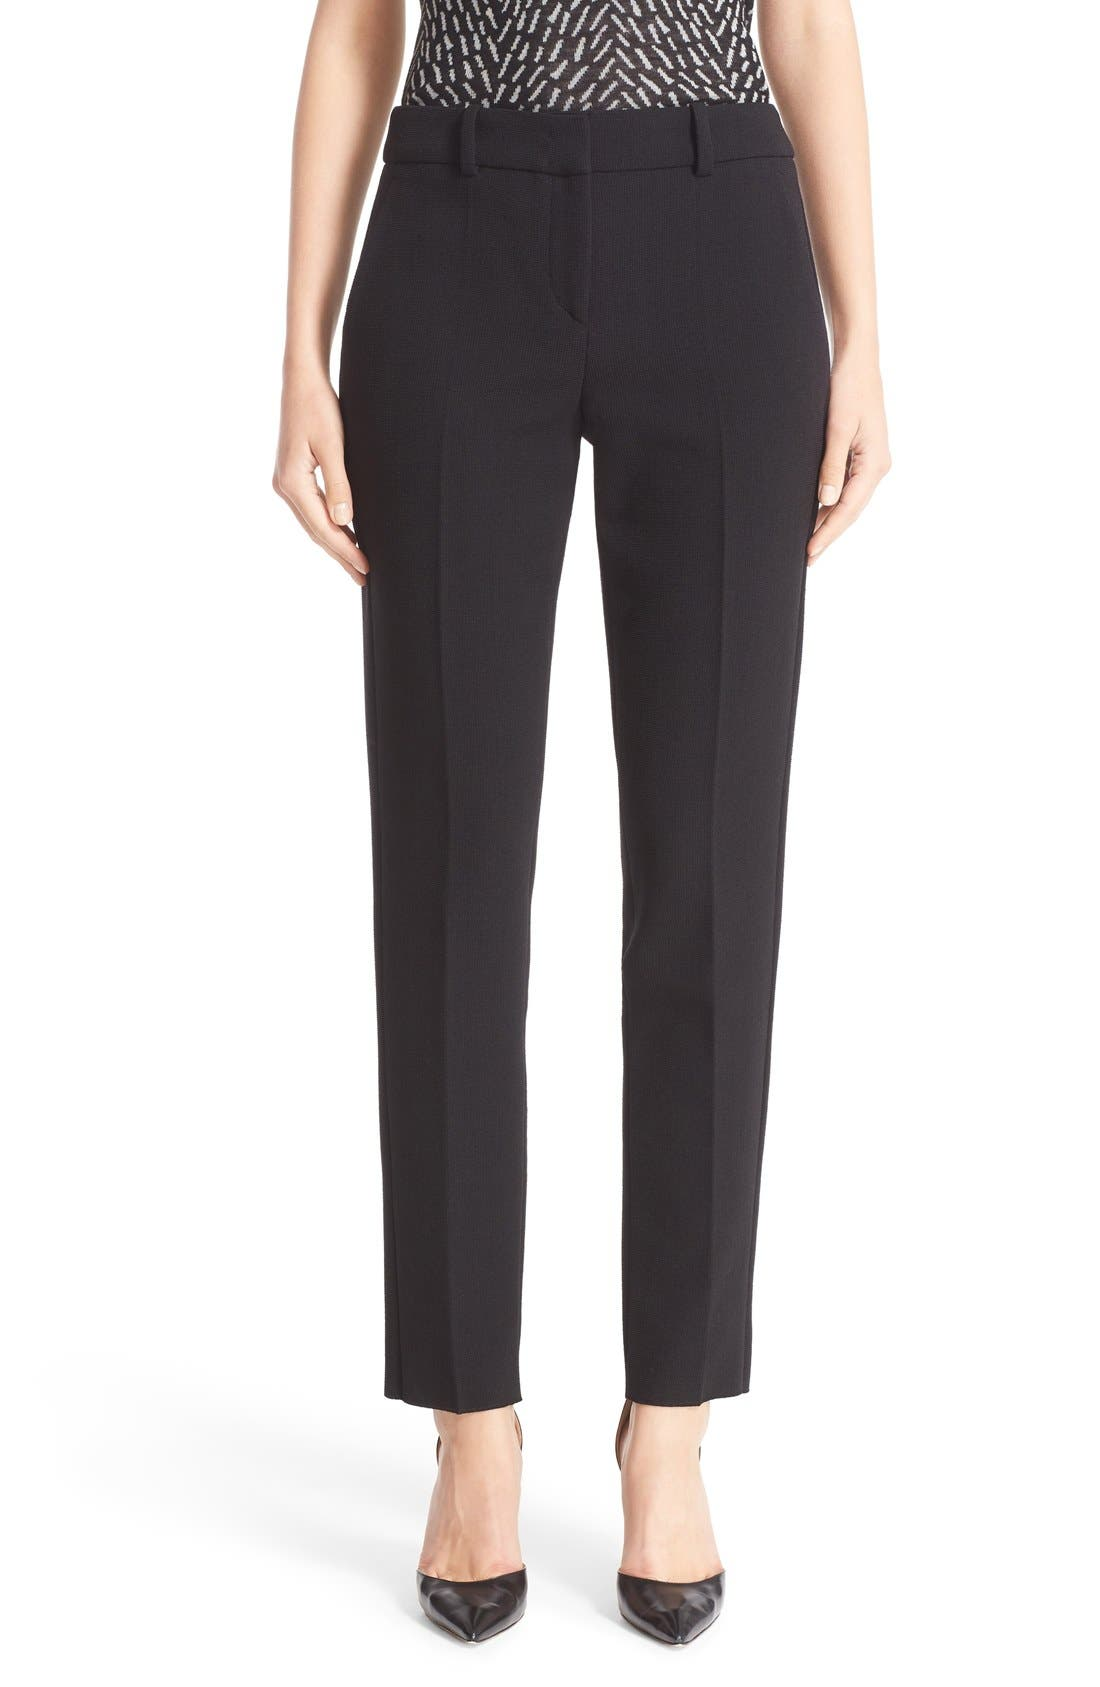 Armani Collezioni Two-Way Stretch Pants